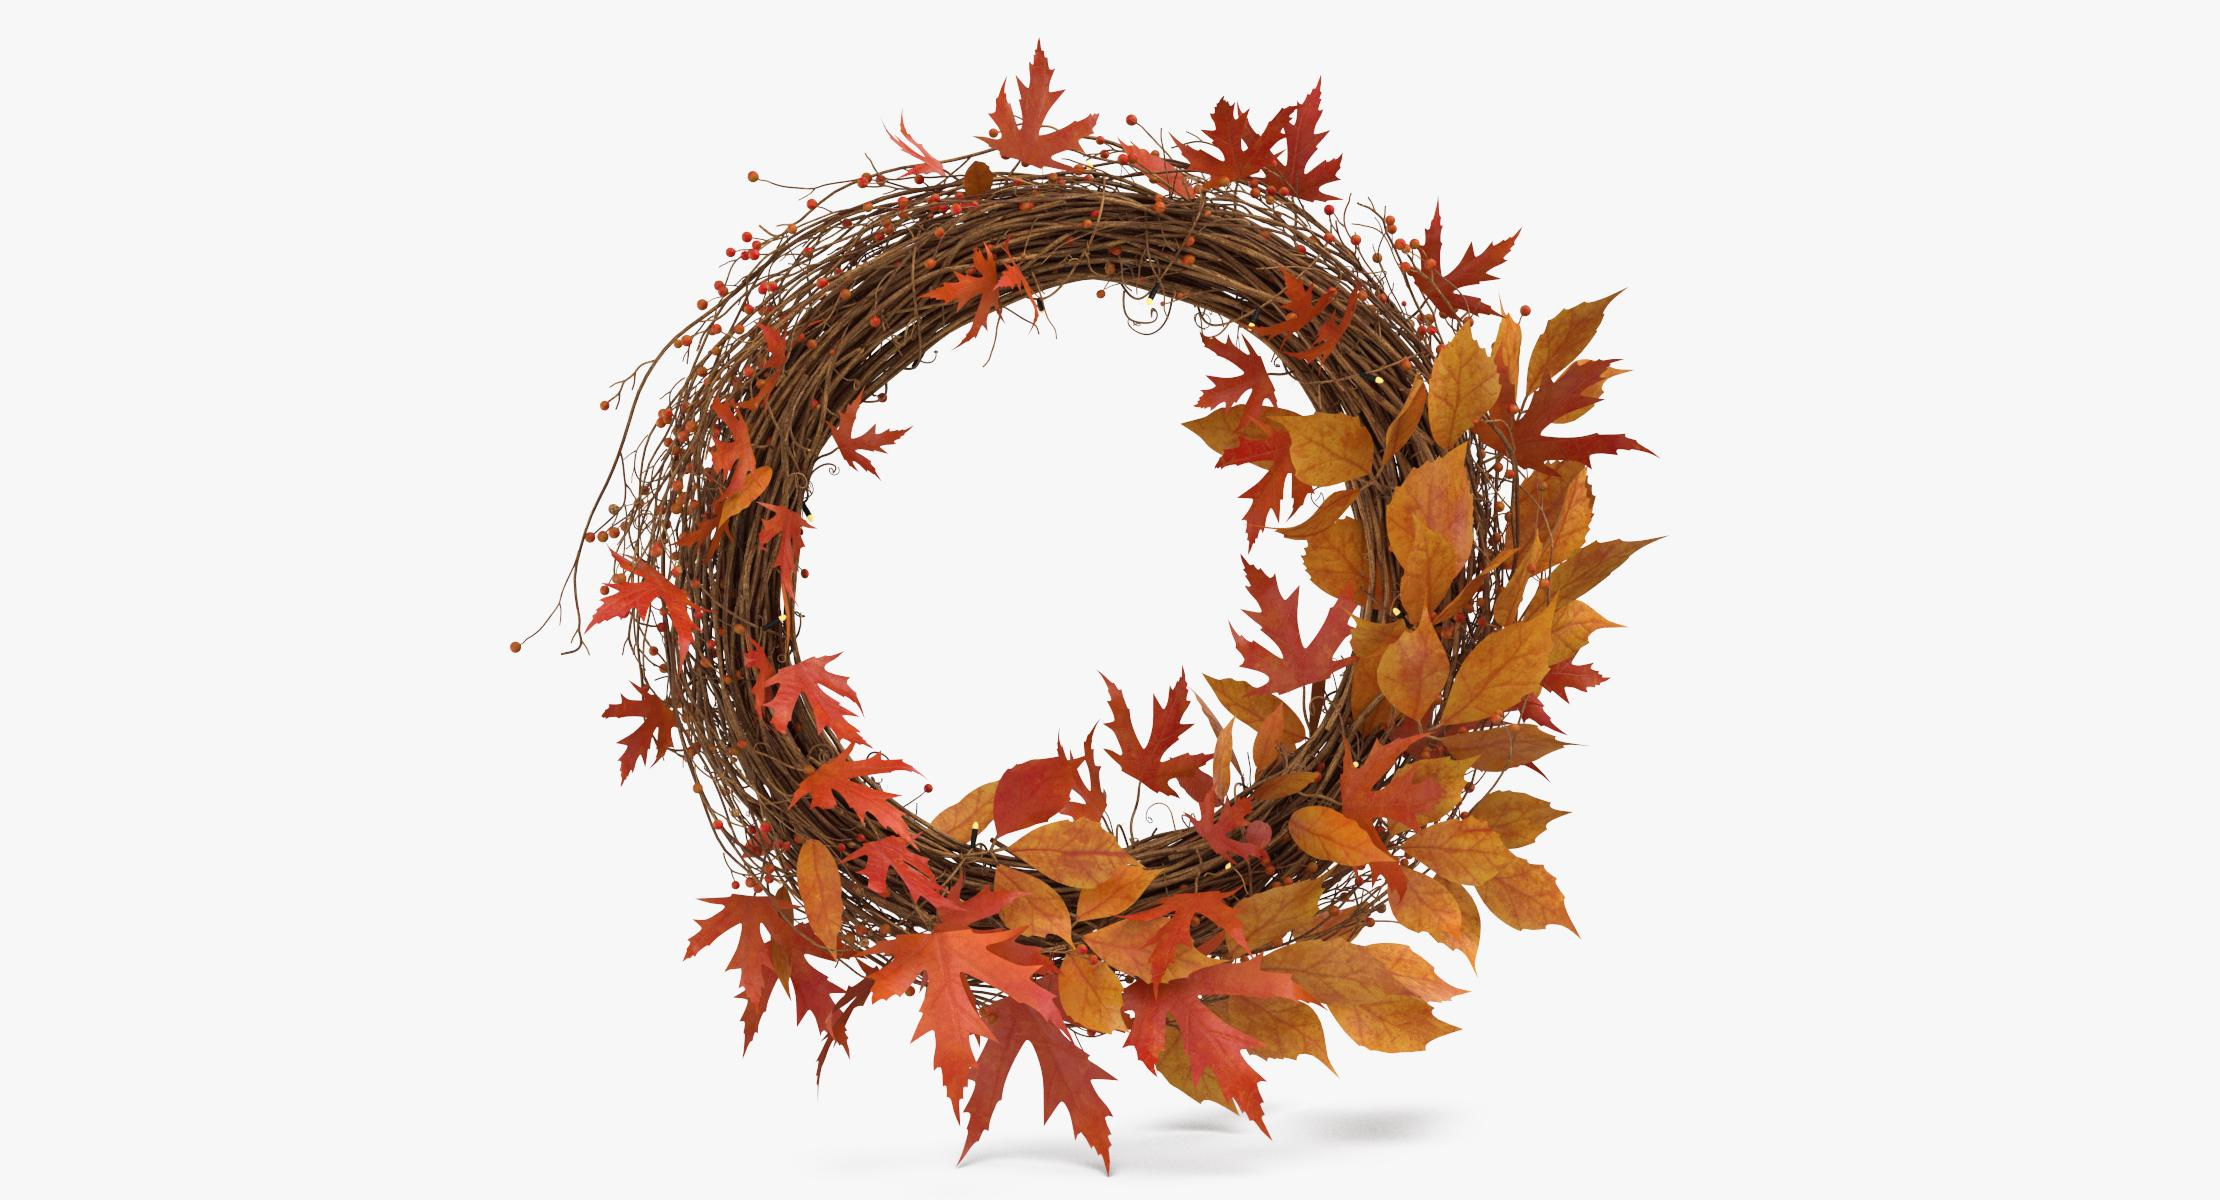 Autumn Wreath 02 - reel 1